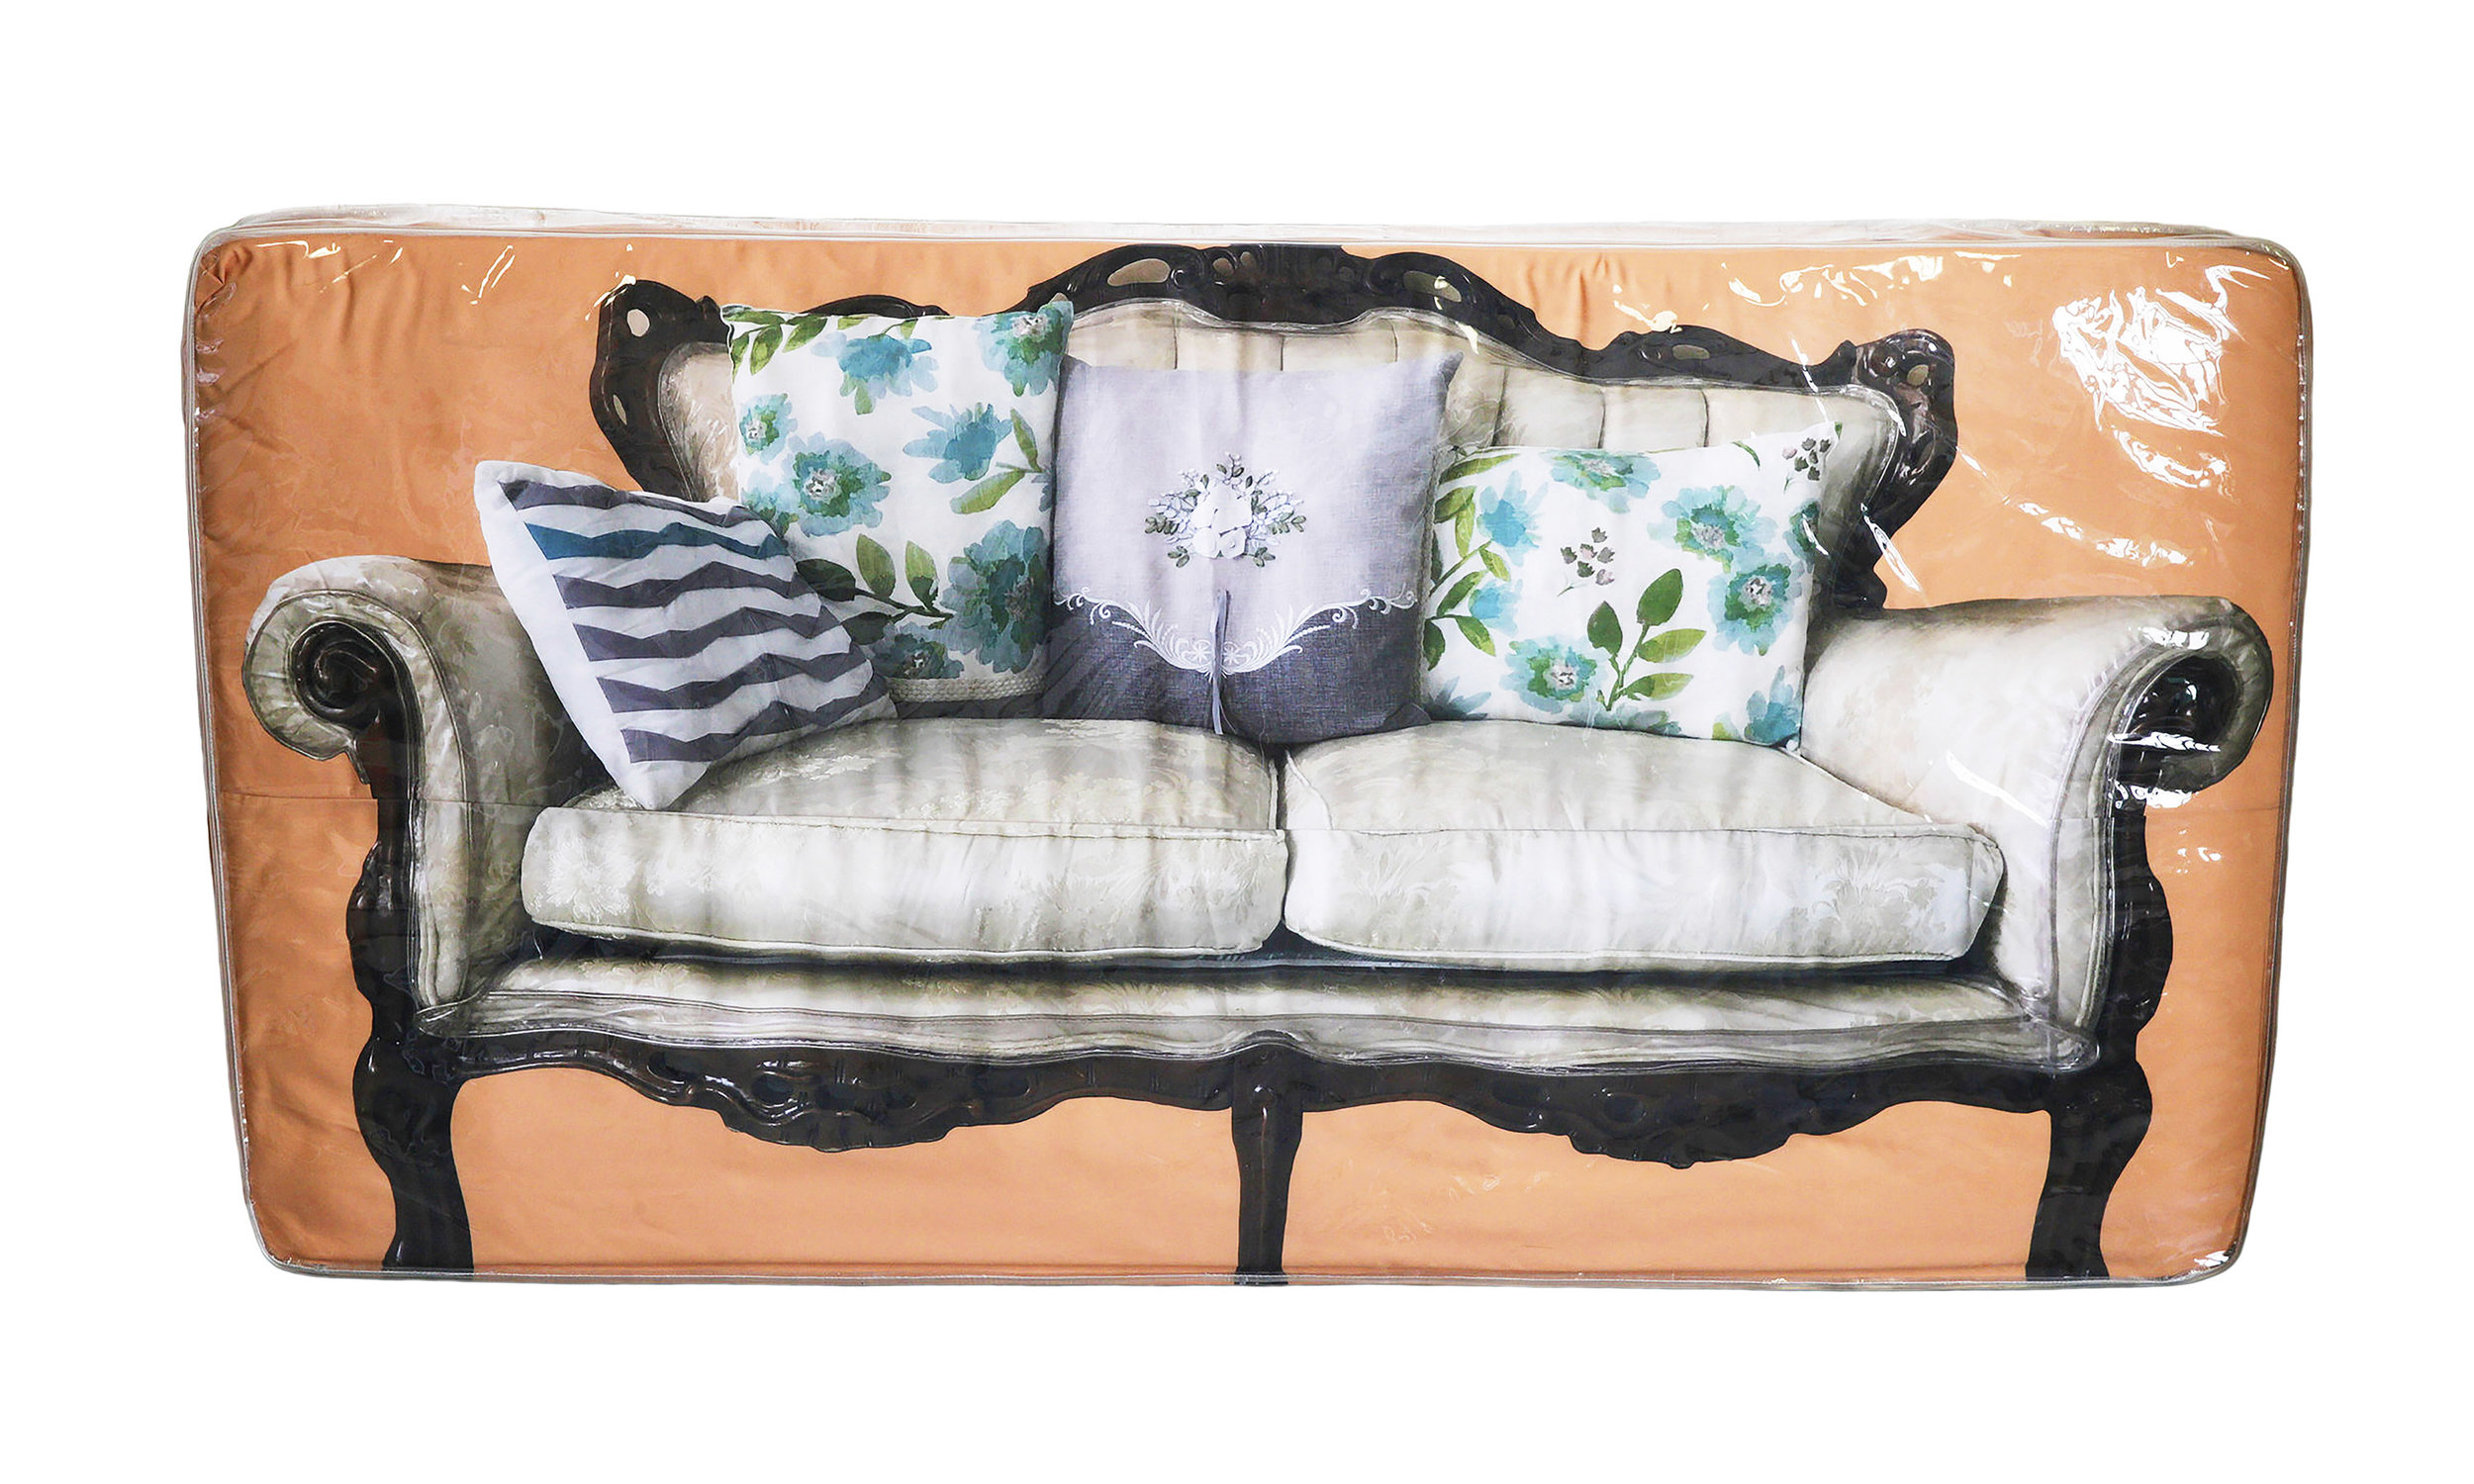 Andreas Couch    Digital print on cotton fitted sheet, Twin Mattress 38 1/2 x 74 x 6 in $12,000